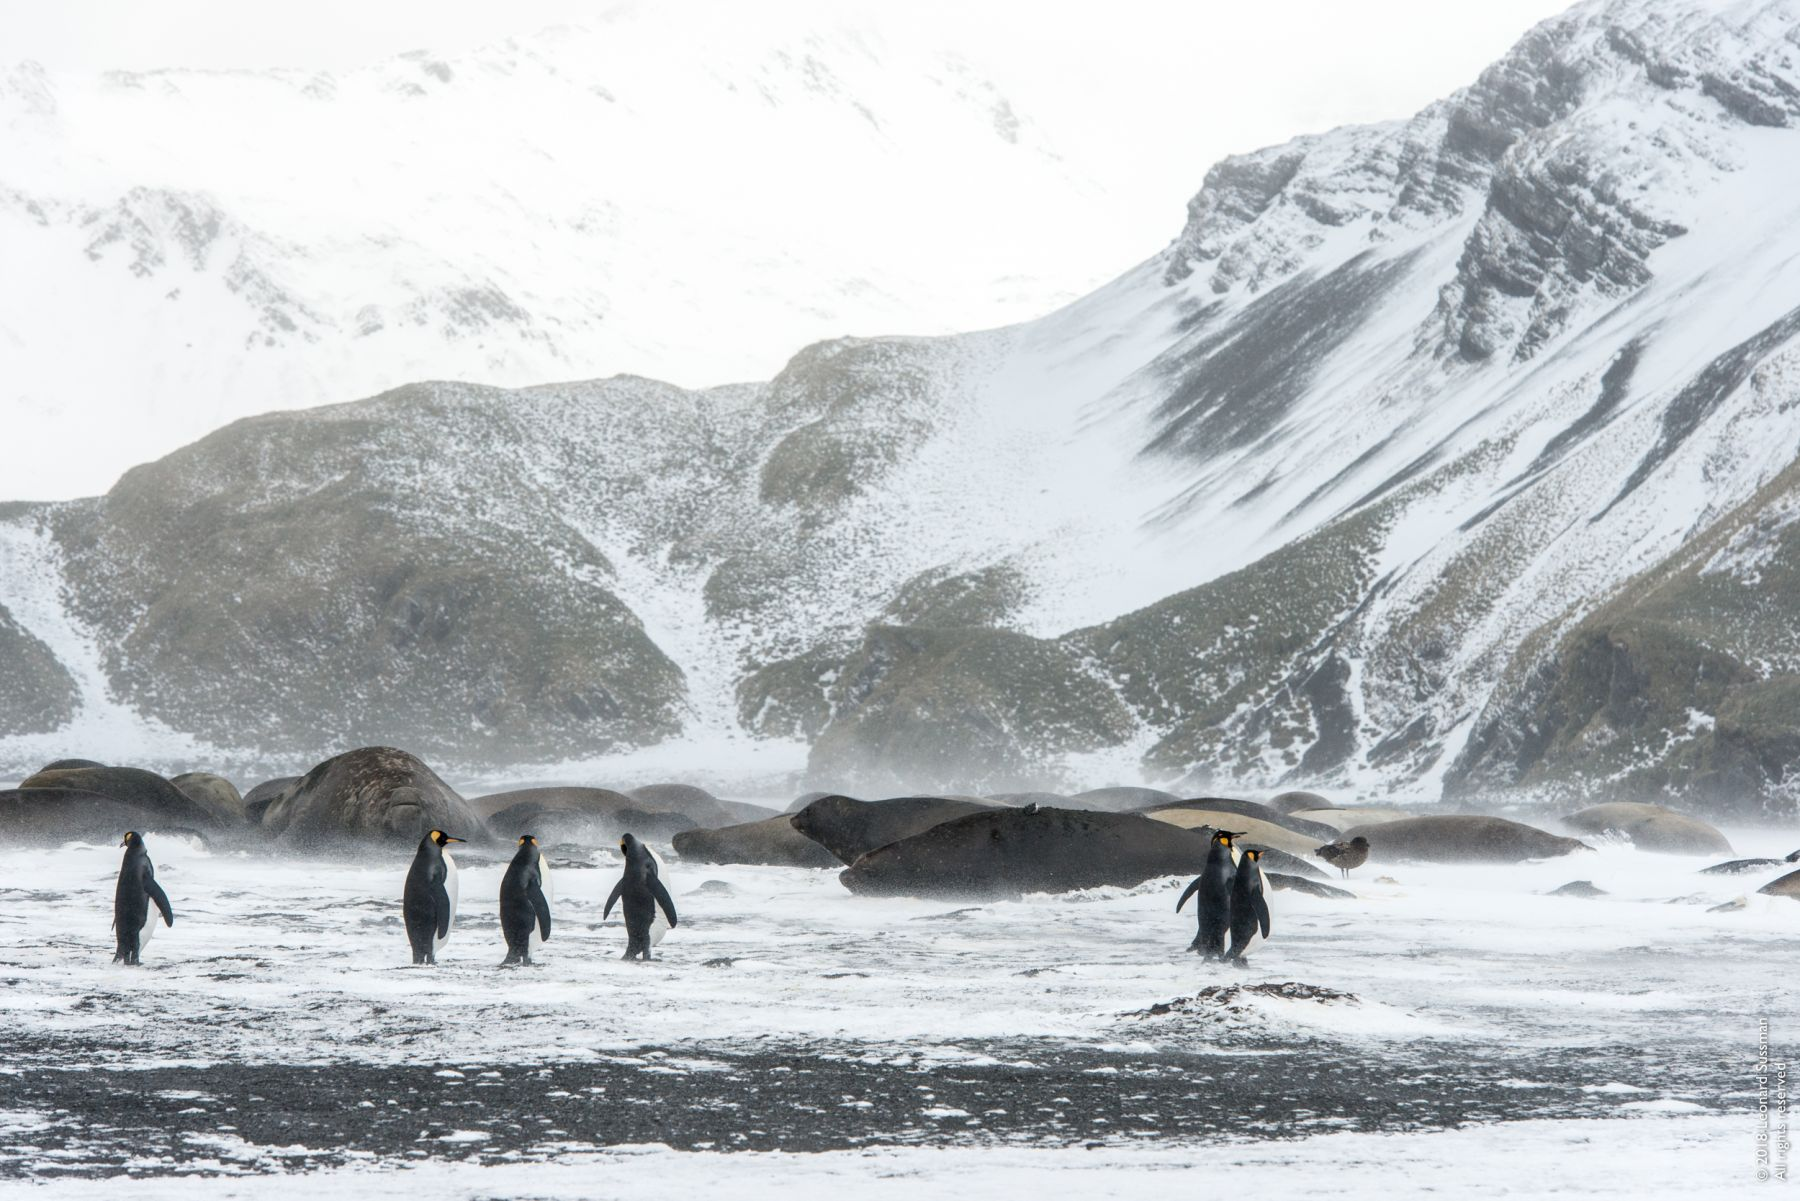 King Penguins and Elephant Seals, Right Whale Bay, South Georgia Islands